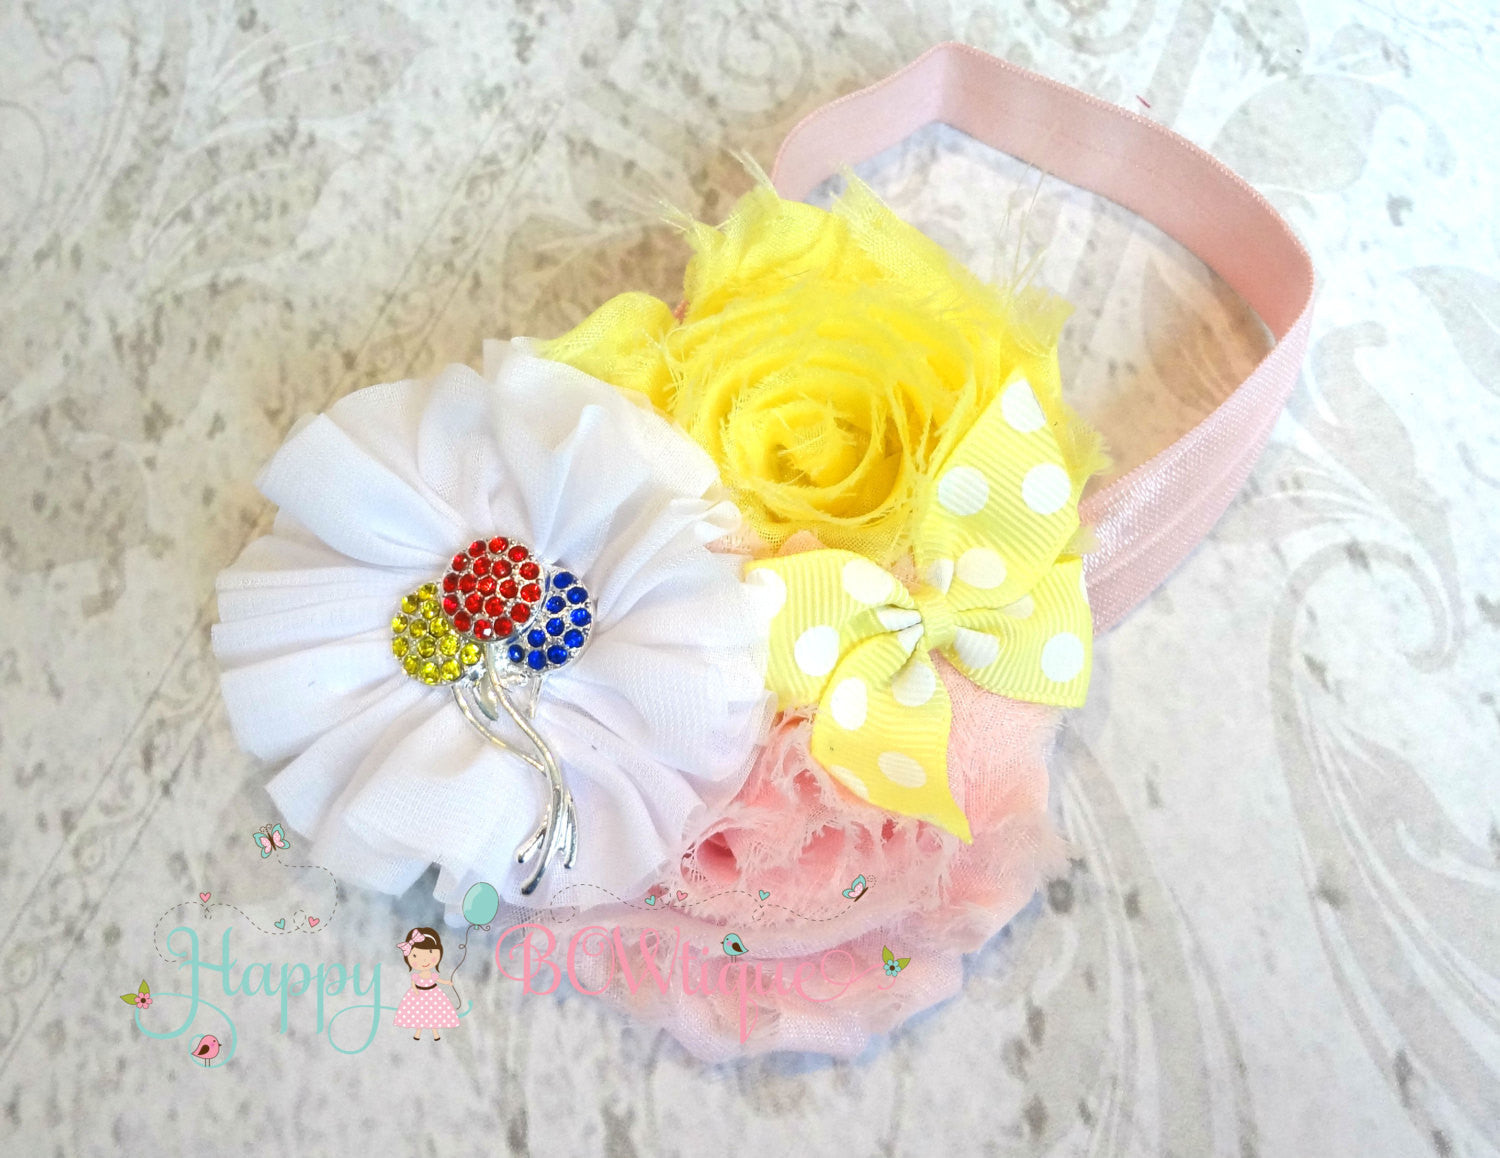 Birthday headband- Birthday #1 headband, Baby girls headband, Birthday celebration, Cake smash headband- Happy BOWtique